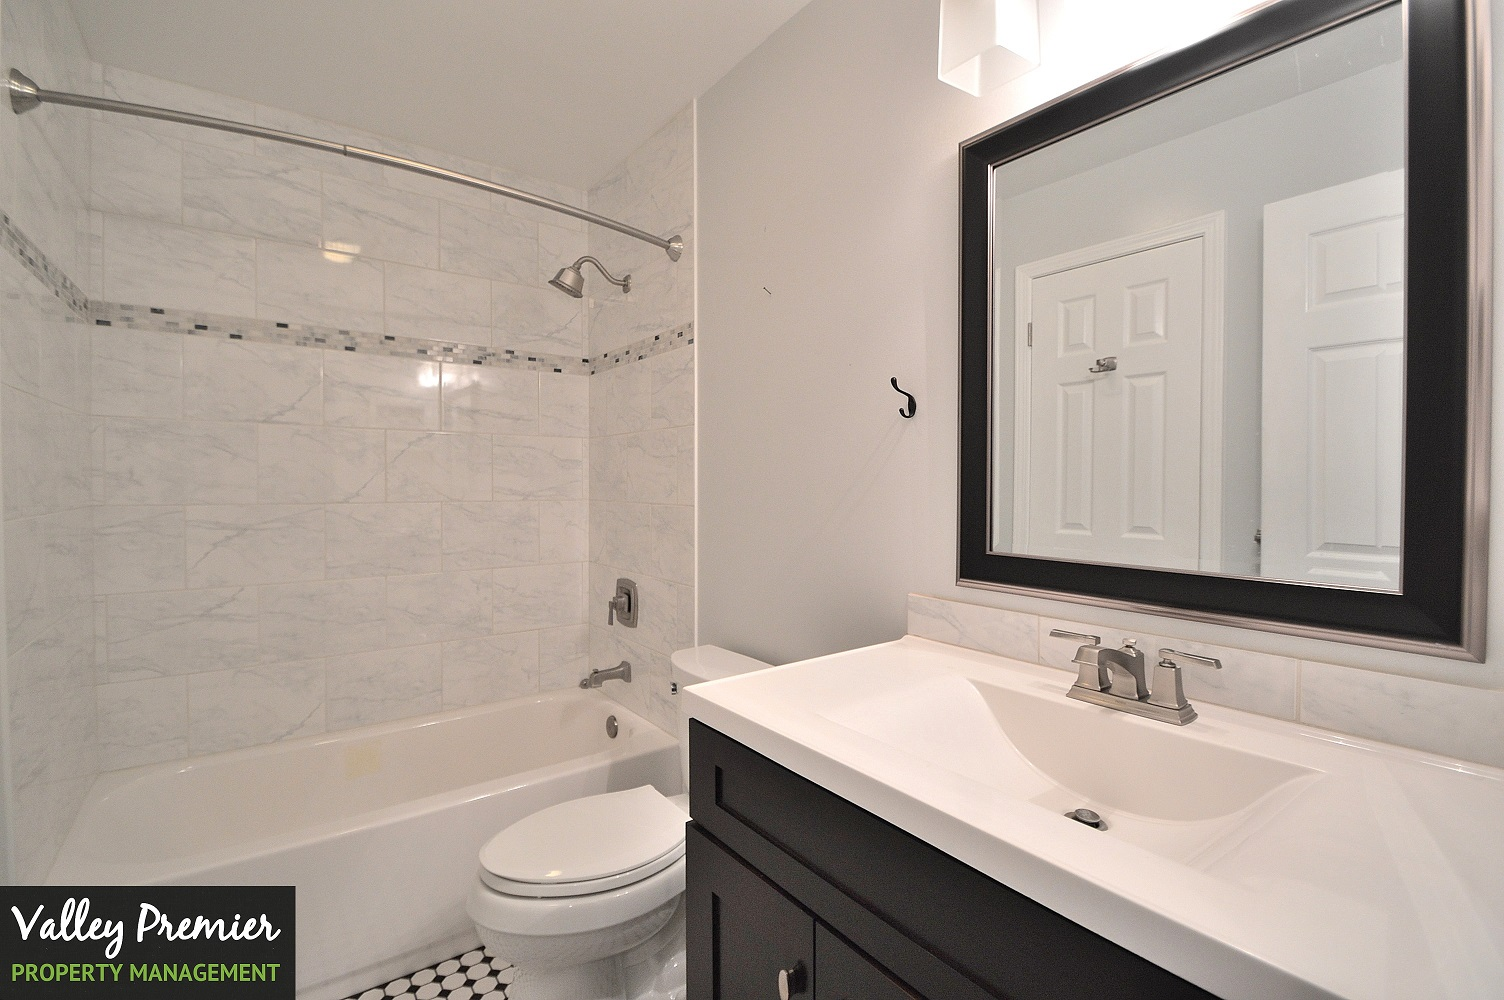 Property management in dublin valley premier property for Dale bathrooms